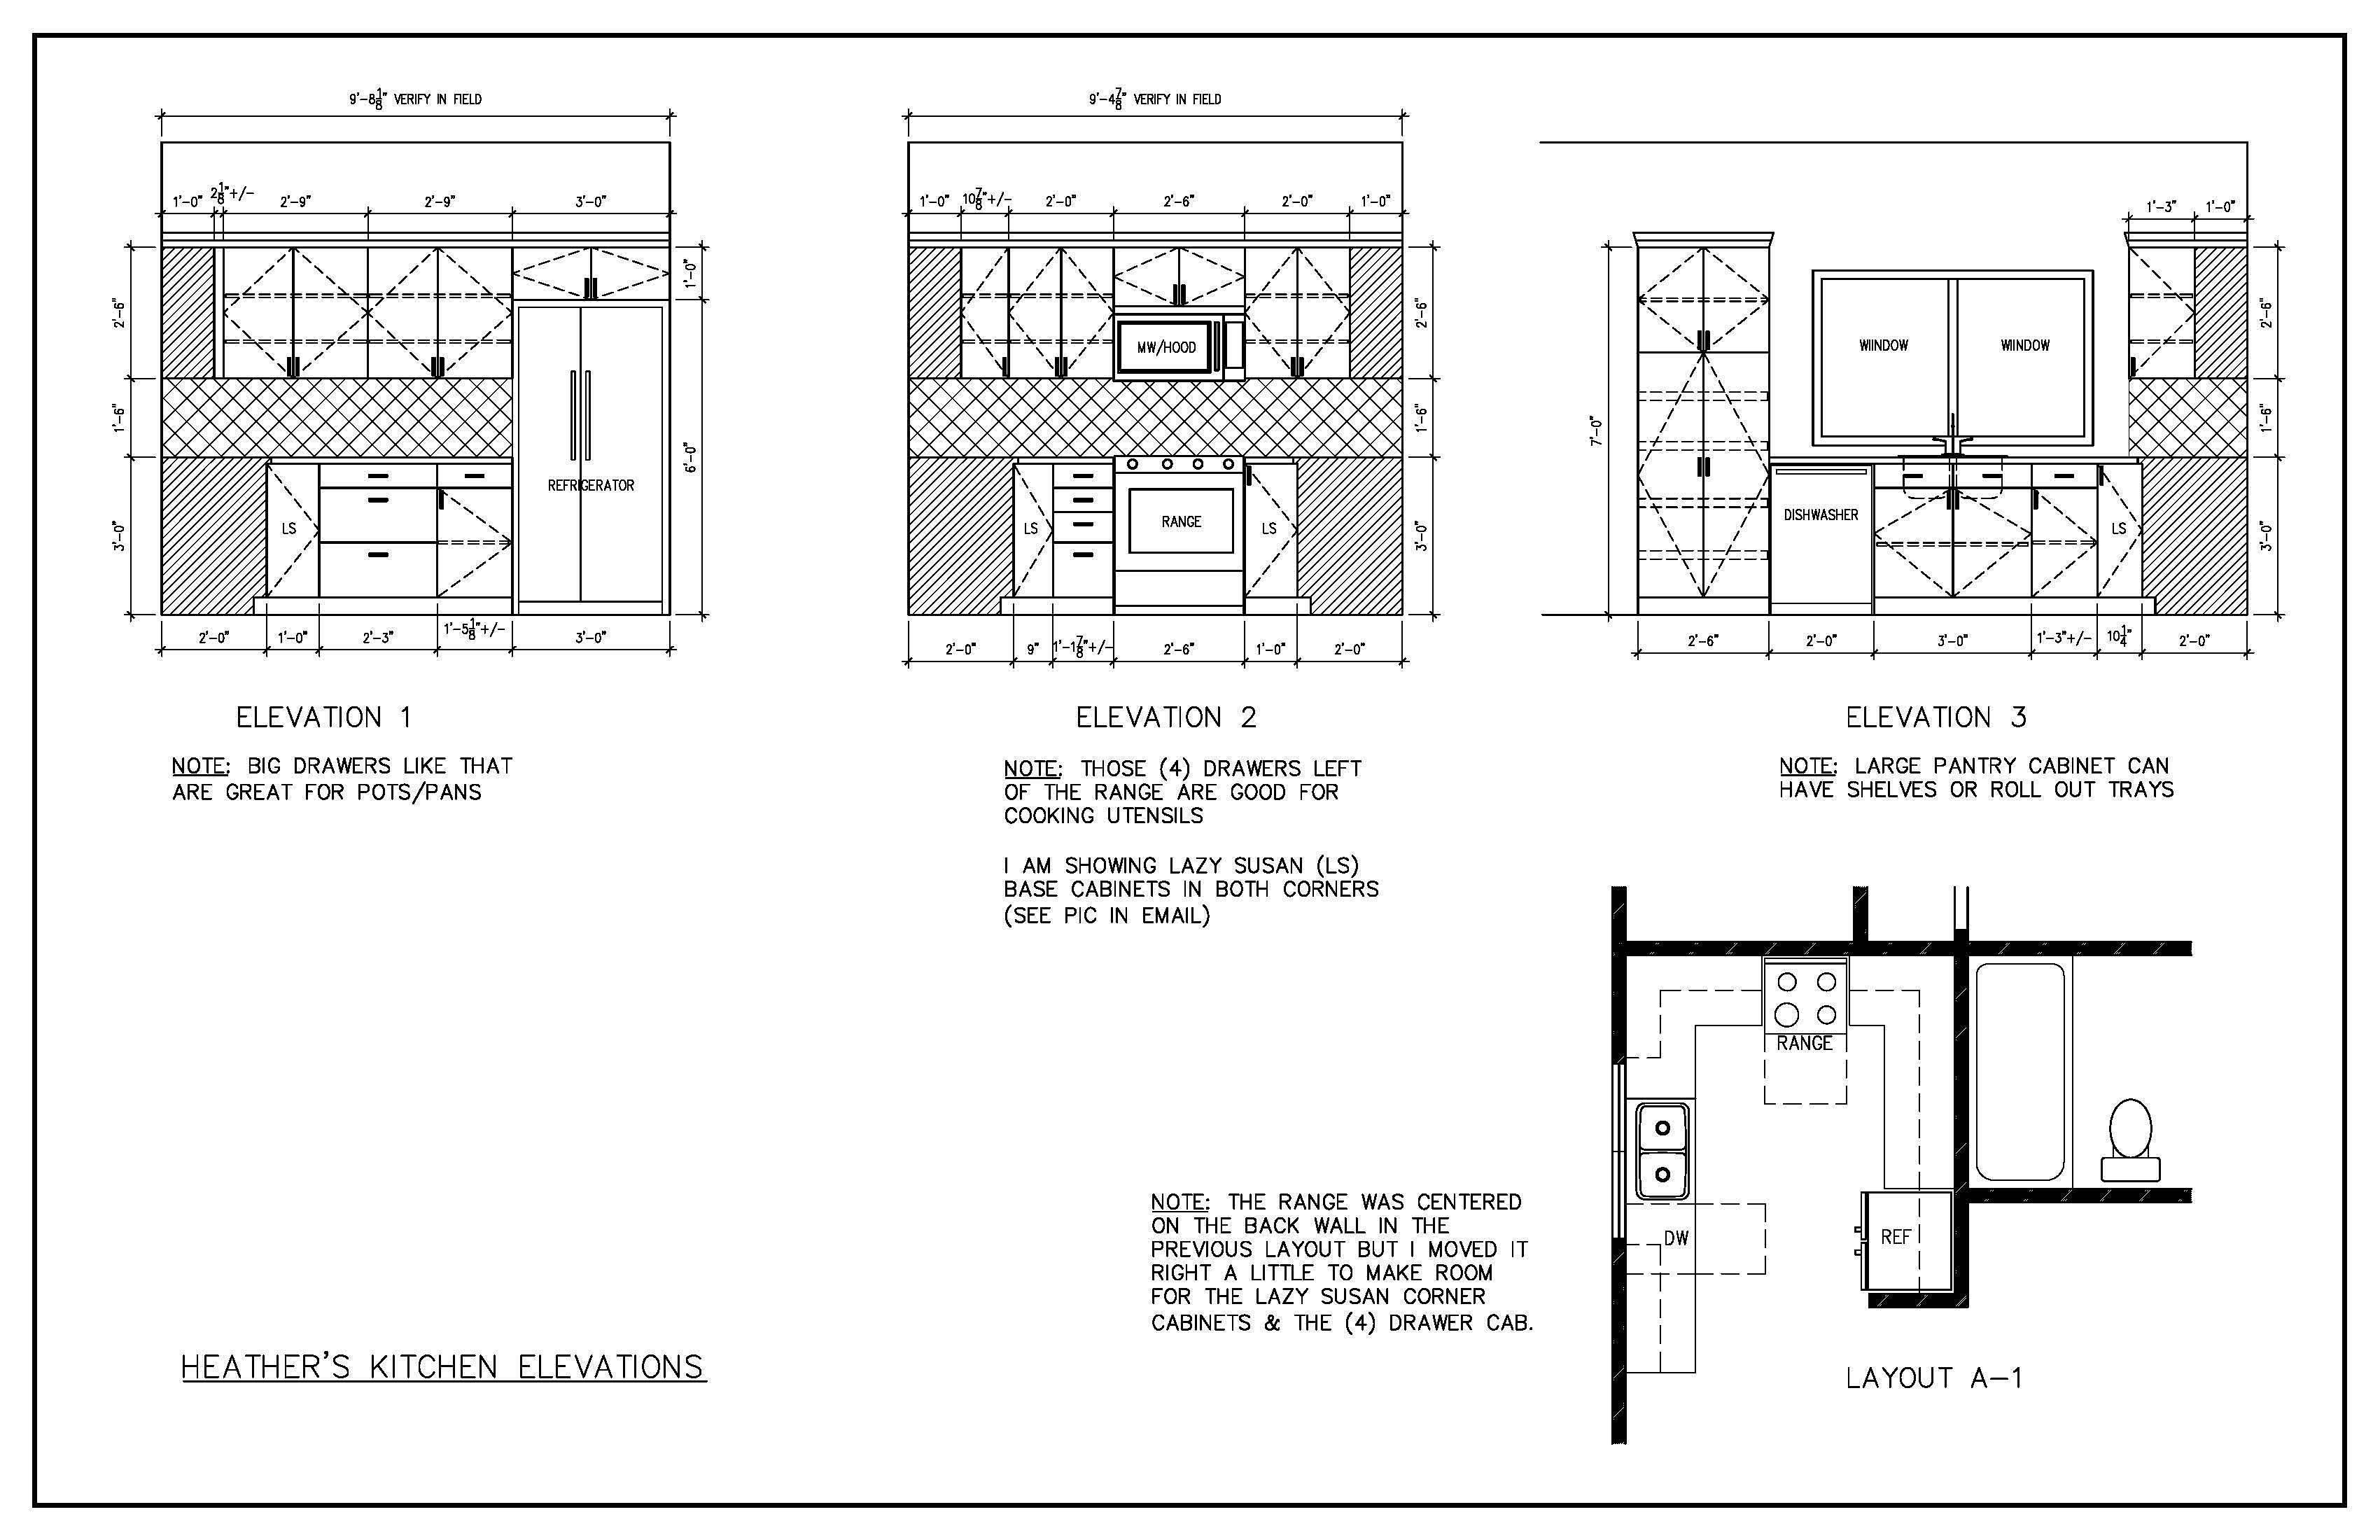 Small Kitchen Design Layout Ideas special financing available hero small kitchen design layout 17 charming inspiration astounding small kitchen design plans layouts 40 with additional Kitchen Design Layout Within Online Kitchen Design Layouts Can Help You Live A Better Life